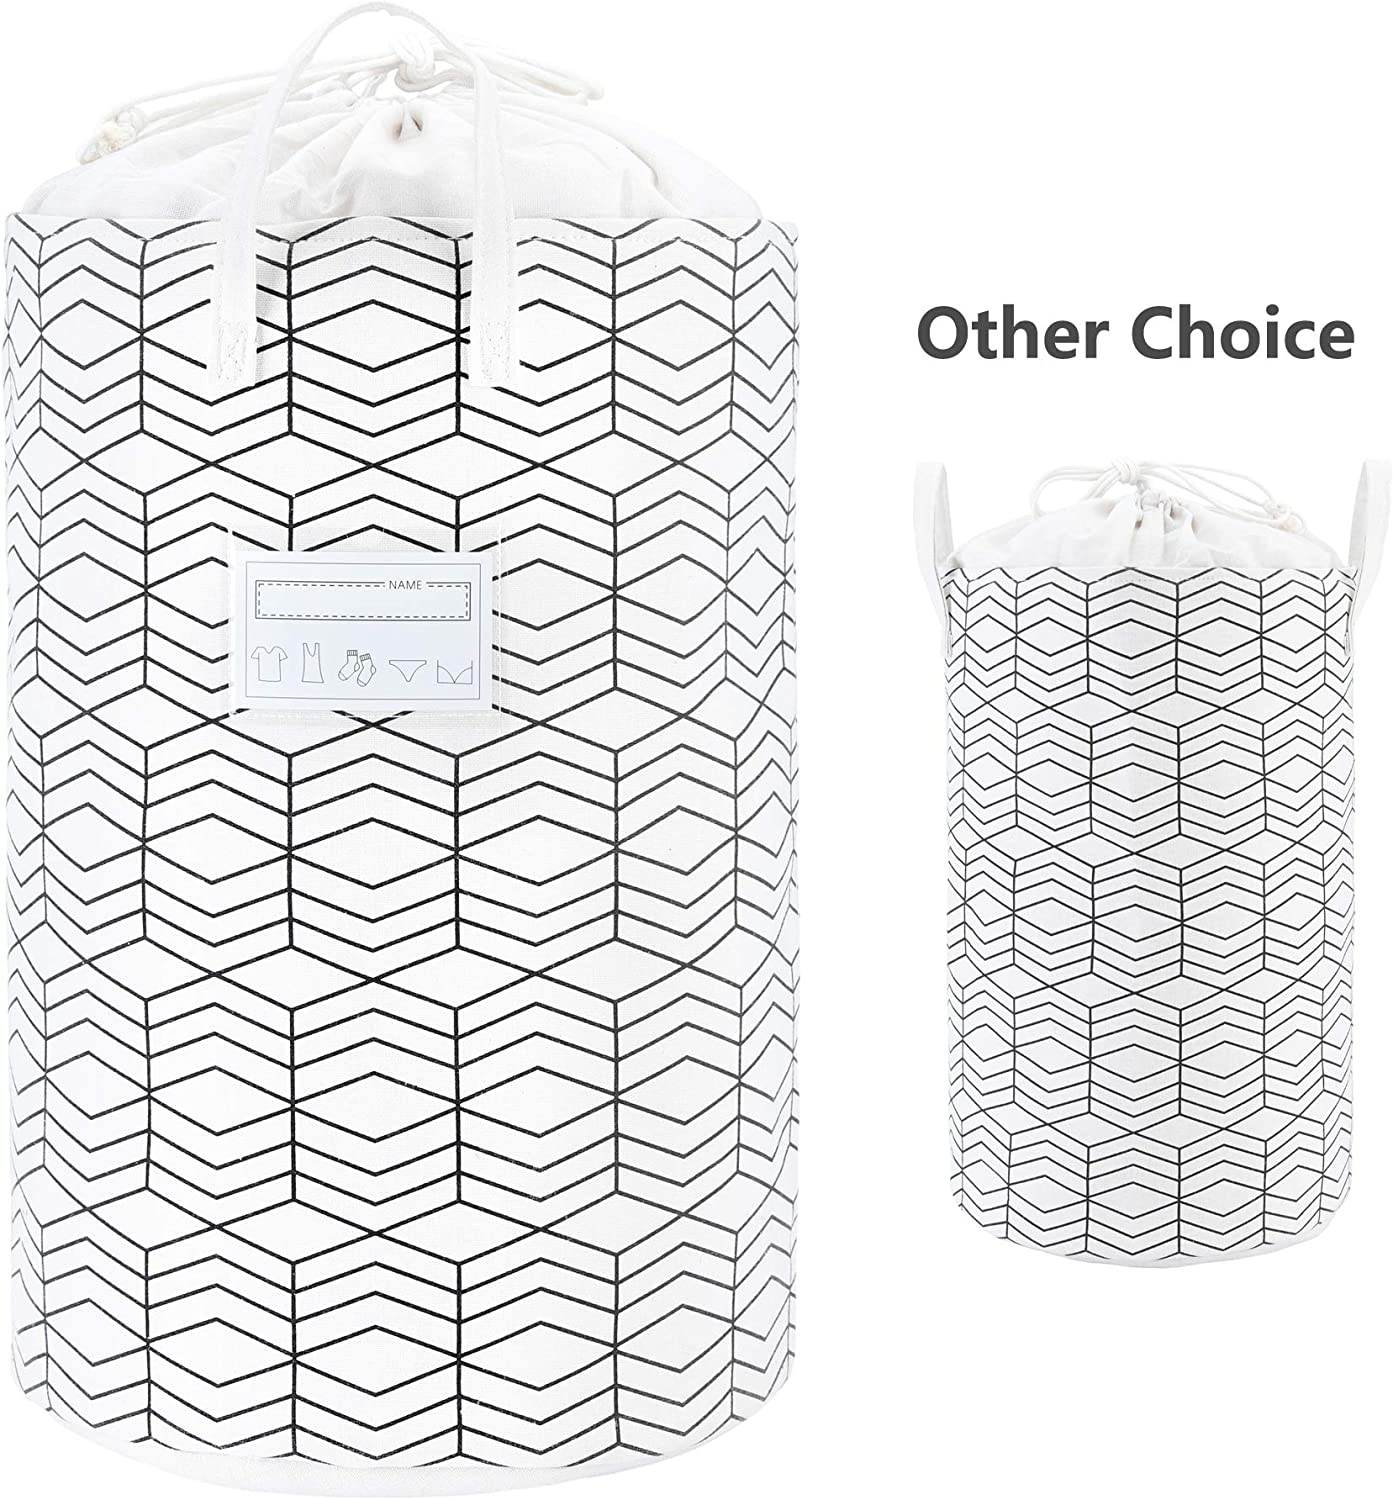 """23.6"""" Large Foldable Laundry Basket Collapsible Clothes Hamper Drawstring Waterproof Laundry Hamper Round Cotton Linen Storage Baskets Home Organizer(Black and White Grids)"""